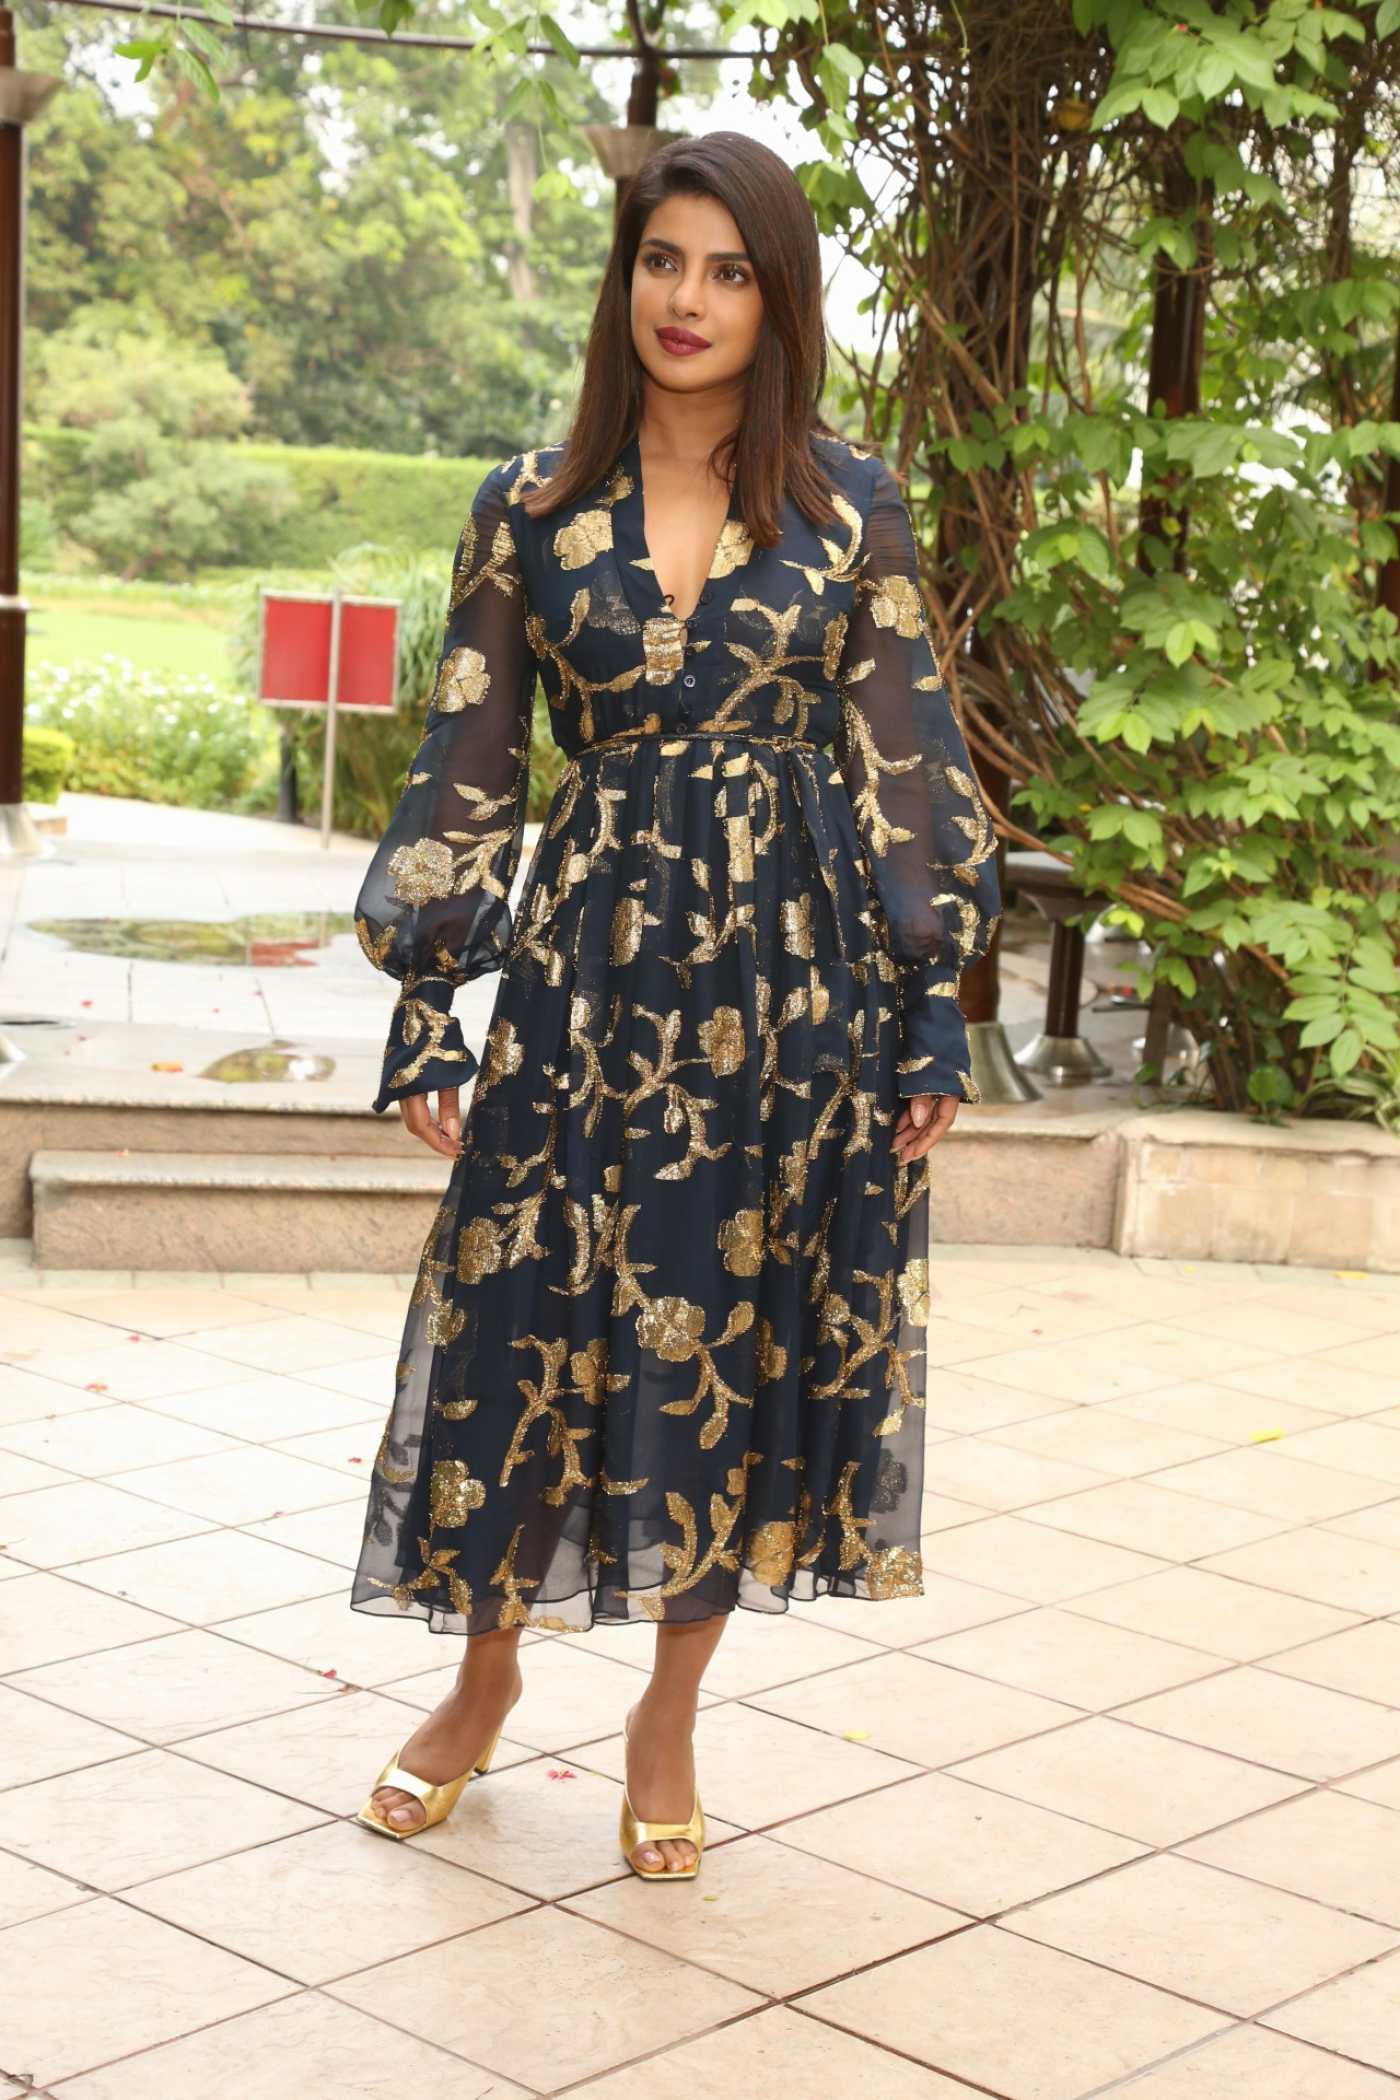 Priyanka Chopra Attends The Sky is Pink Promotion in Delhi 10/01/2019